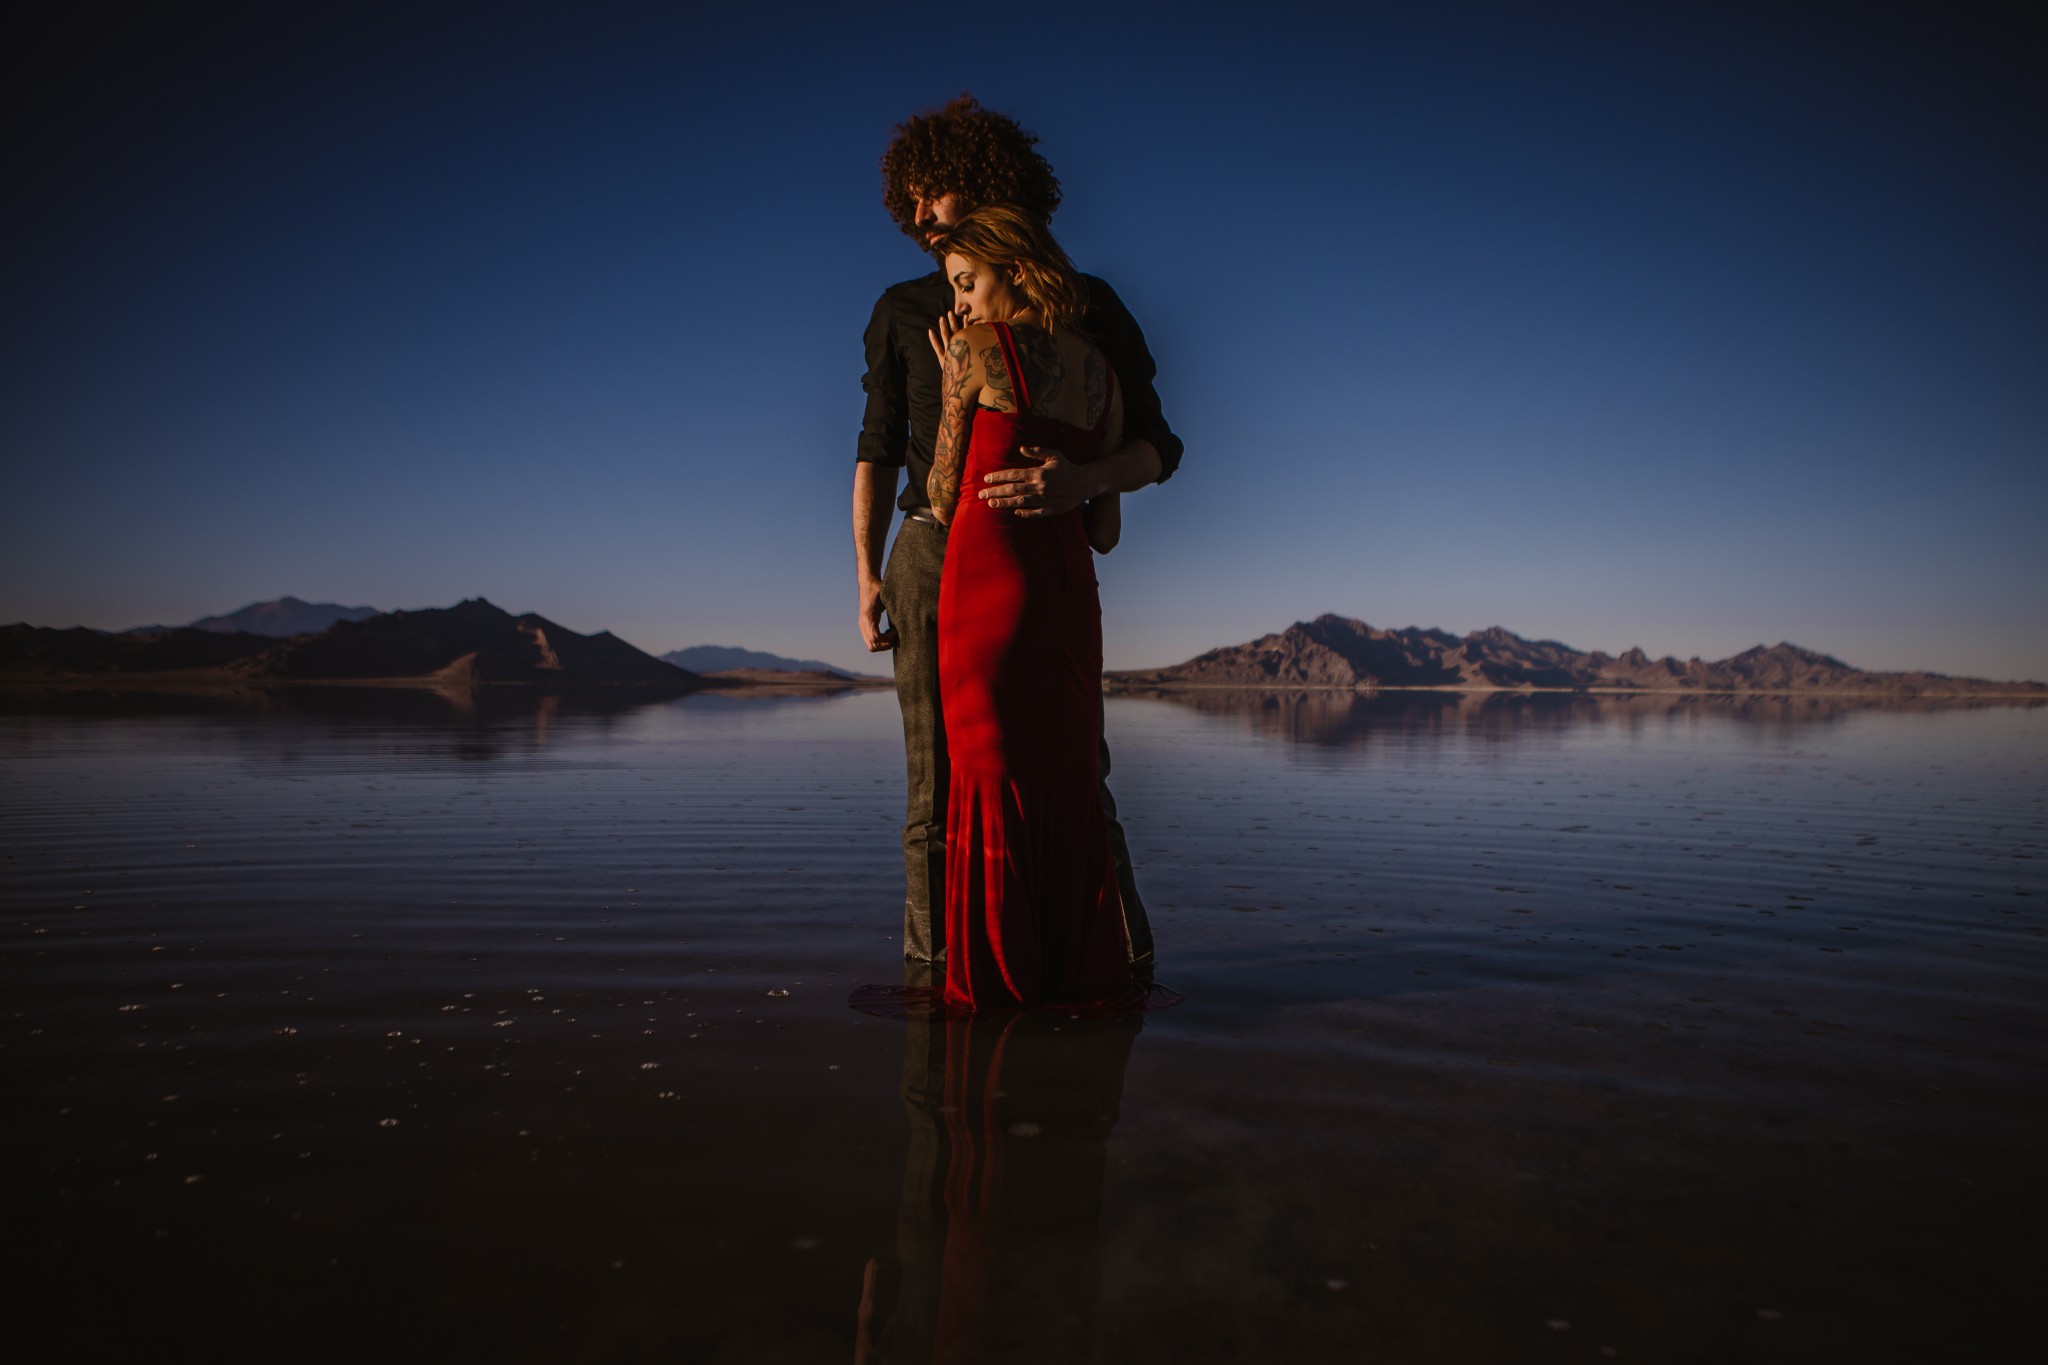 san diego wedding   photographer | close-up shot of woman in red dress embracing man in black   polo while standing on salt flats